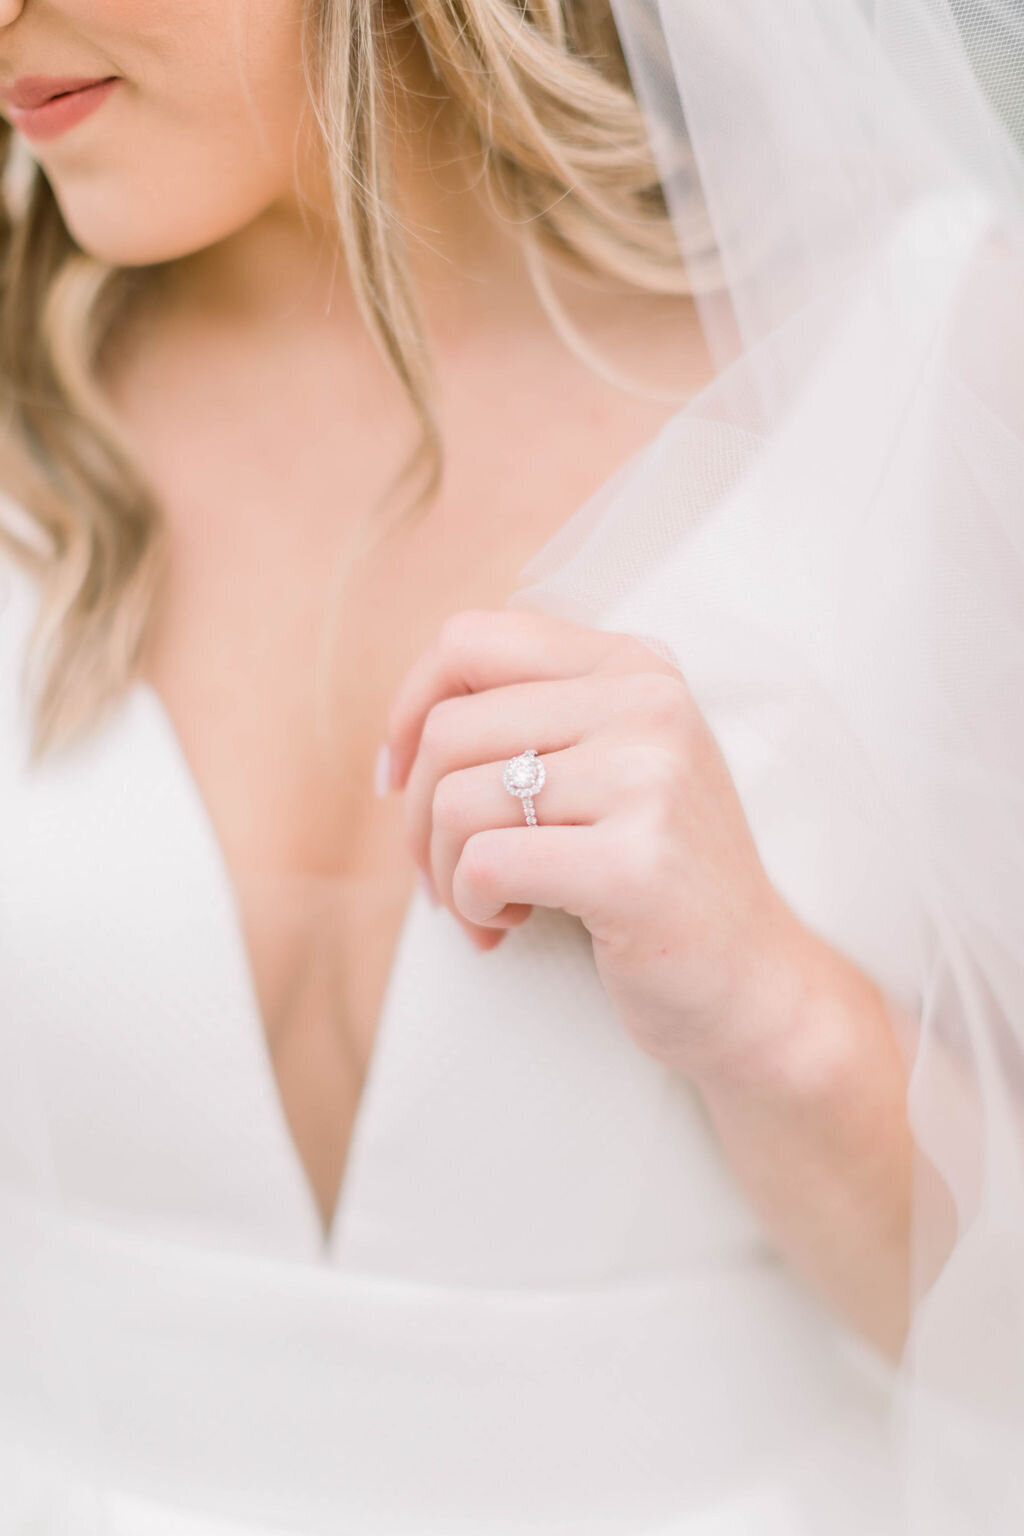 Fine Art details of bridal gown and engagement ring